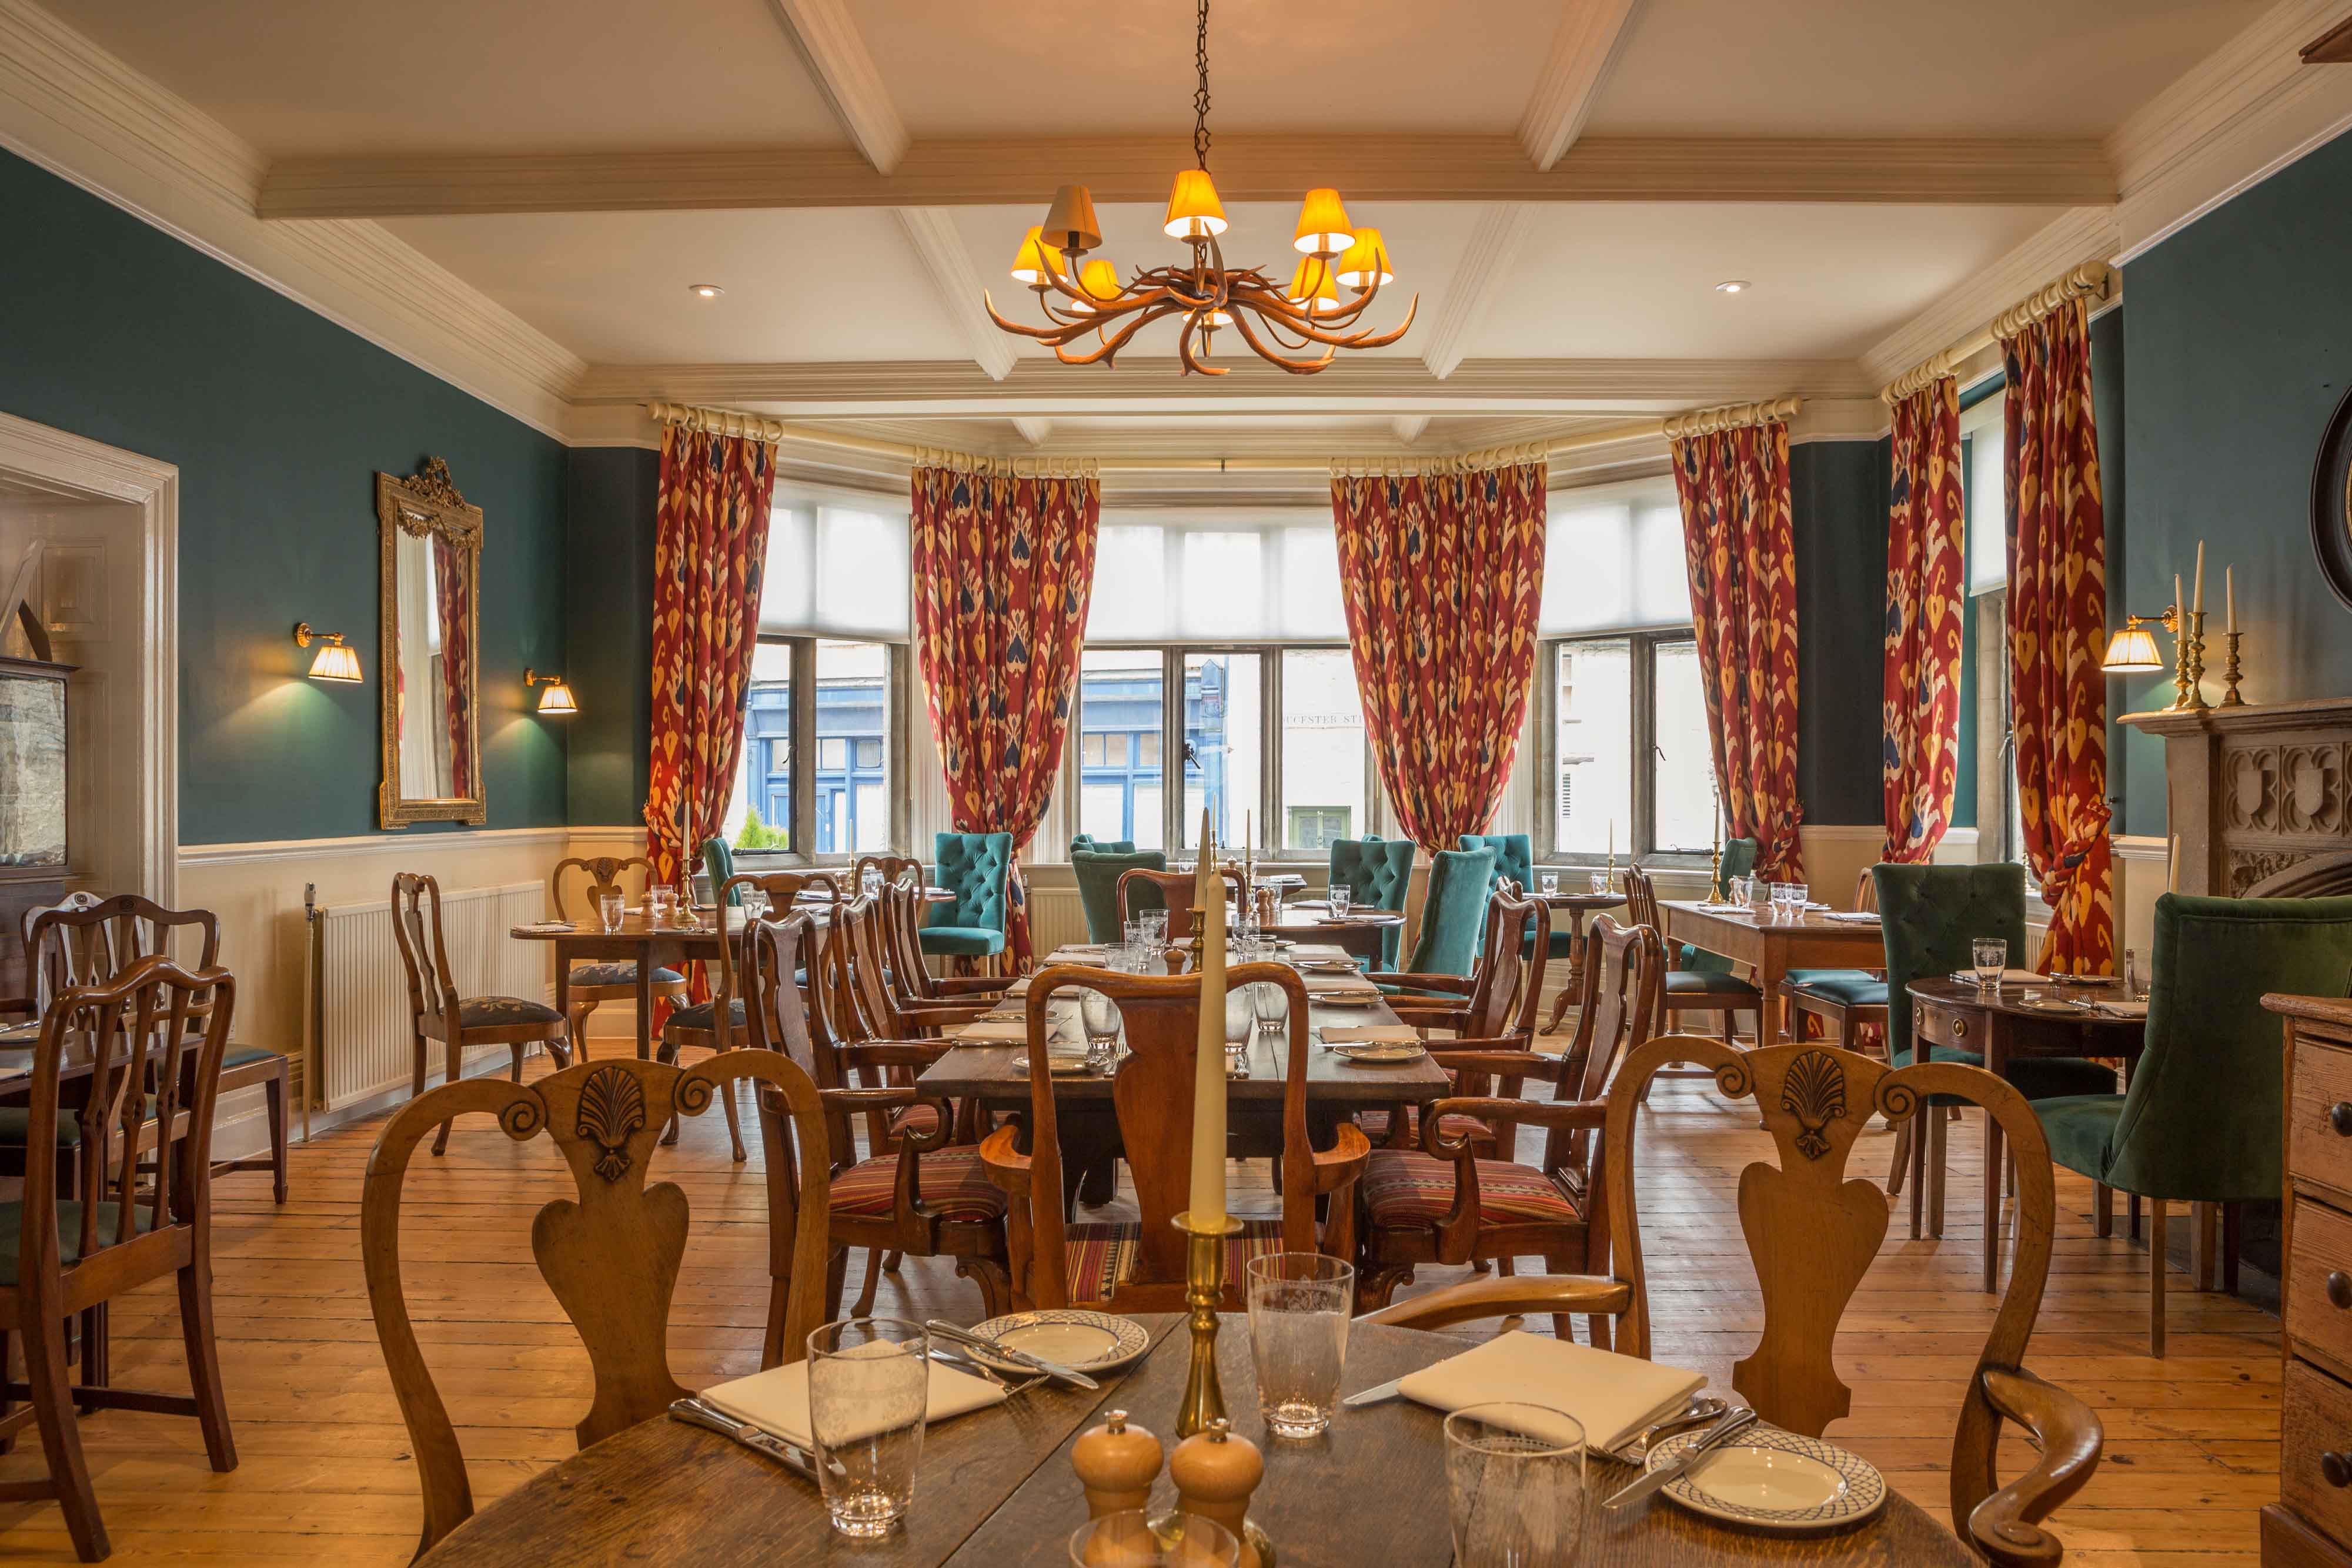 The luxurious interior of the hotel's dining room with blue walls and elegant furnishings.